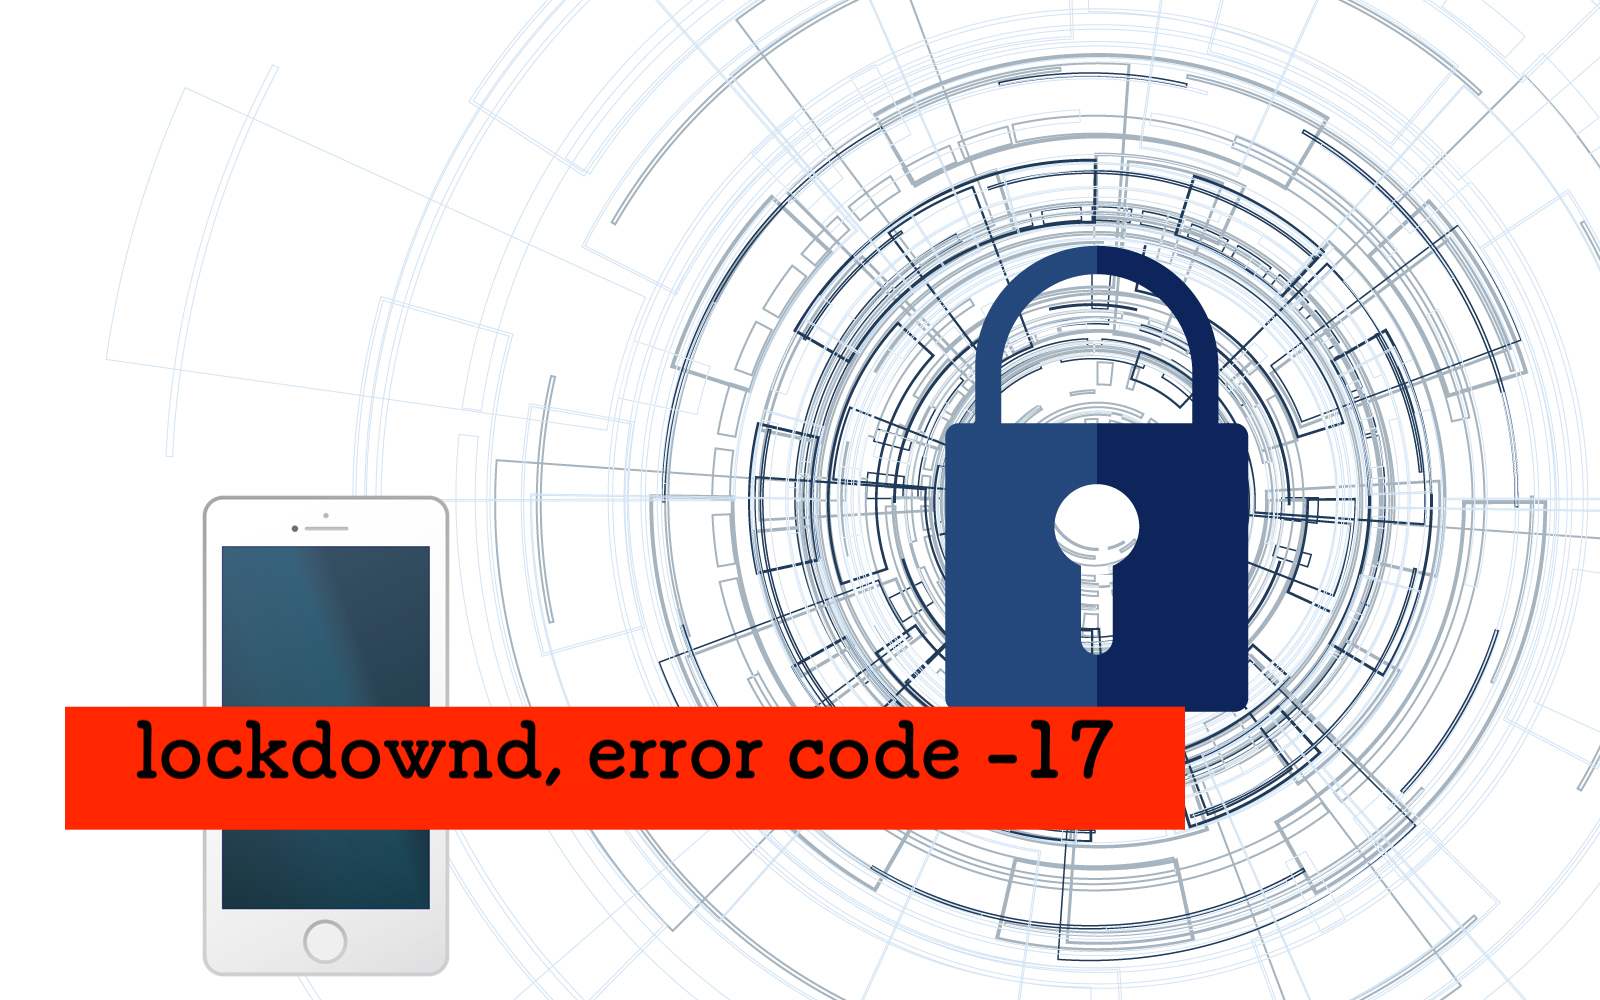 Could not connect to lockdownd, error code -17 が出たとき